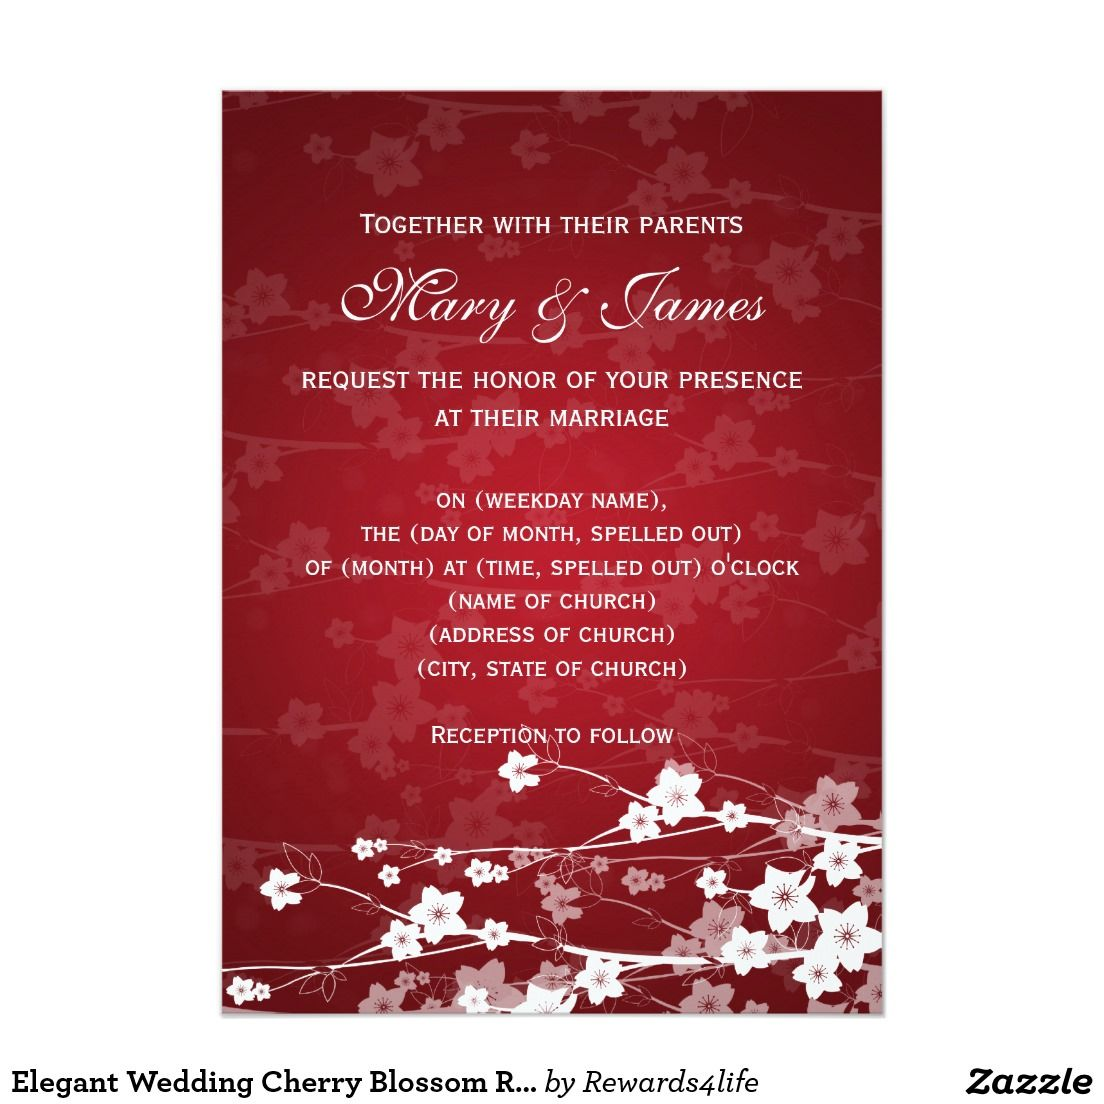 Elegant Wedding Cherry Blossom Red 5x7 Paper Invitation Card | ncl ...